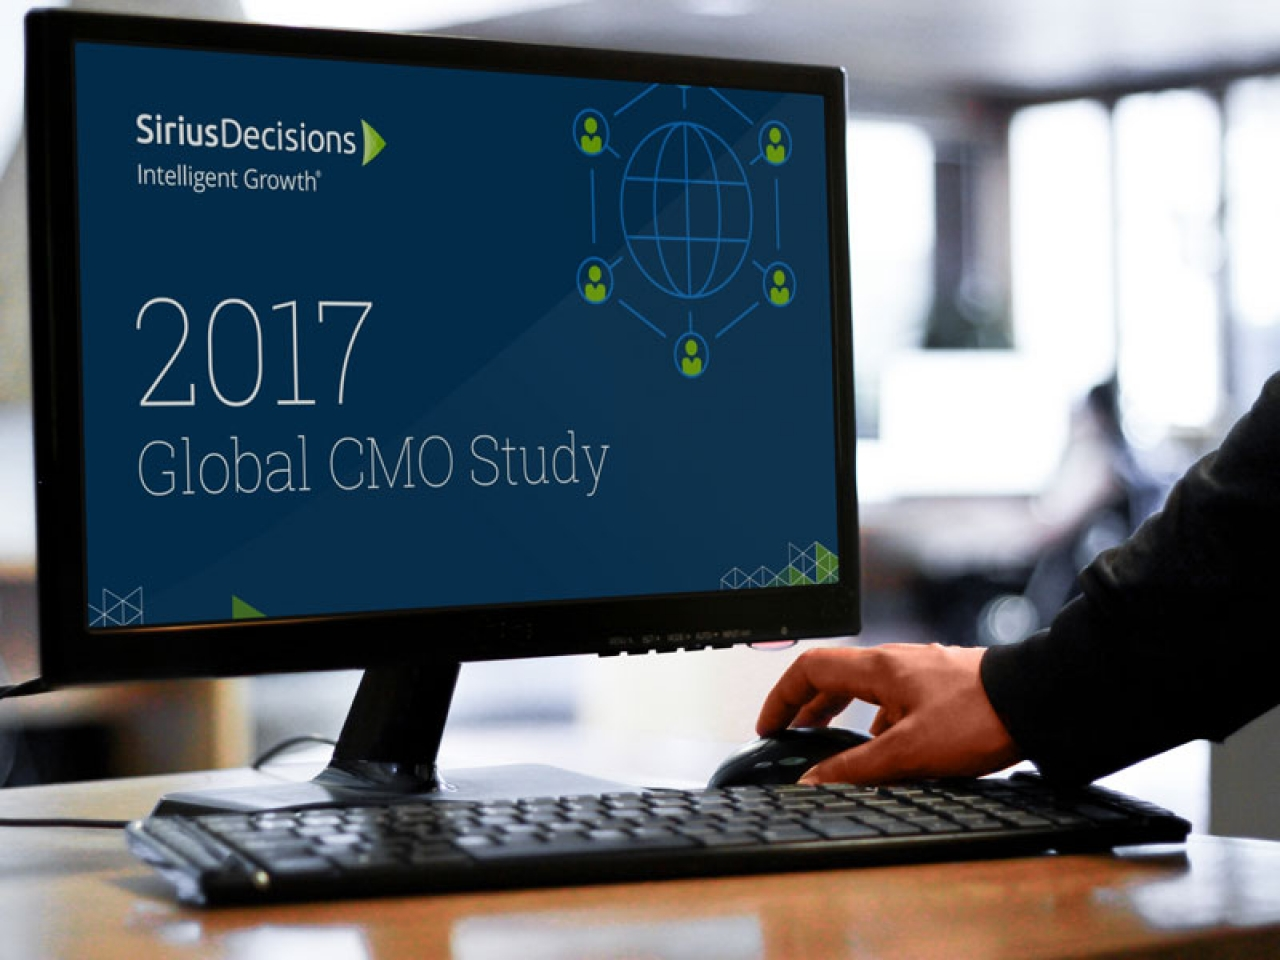 SiriusDecisions Survey Shows CMOs Fueling Growth Strategies With Buyer-Centric Tools & Skill Sets